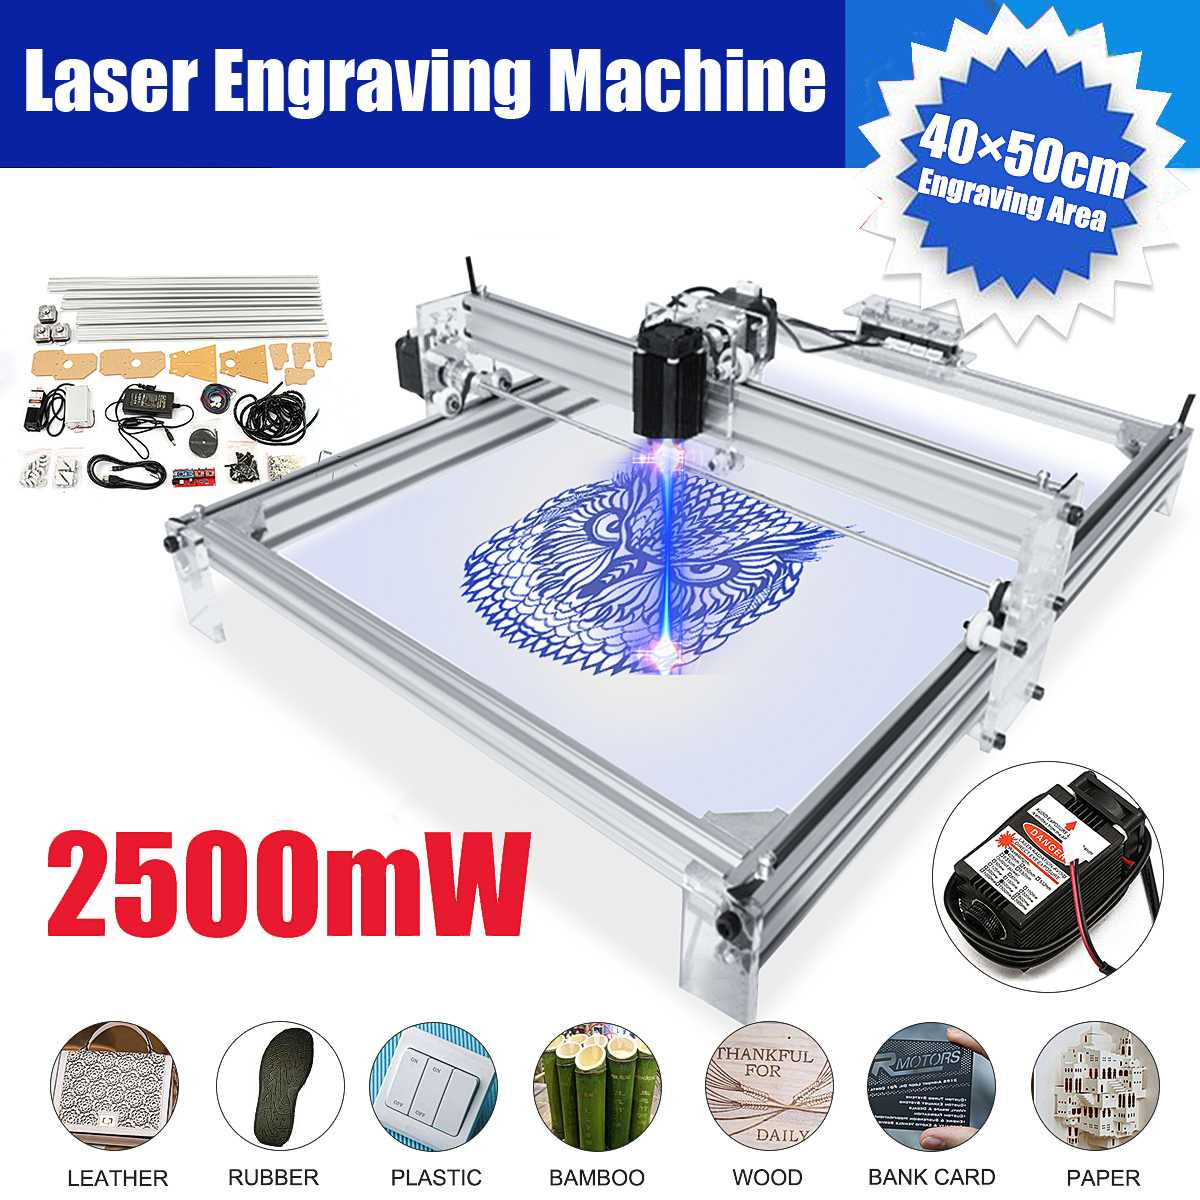 40*50cm Mini 2500MW Laser Engraving Machine 12V DIY Desktop Mini Wood RouterCutting/Engraving Machine With Laser Goggles